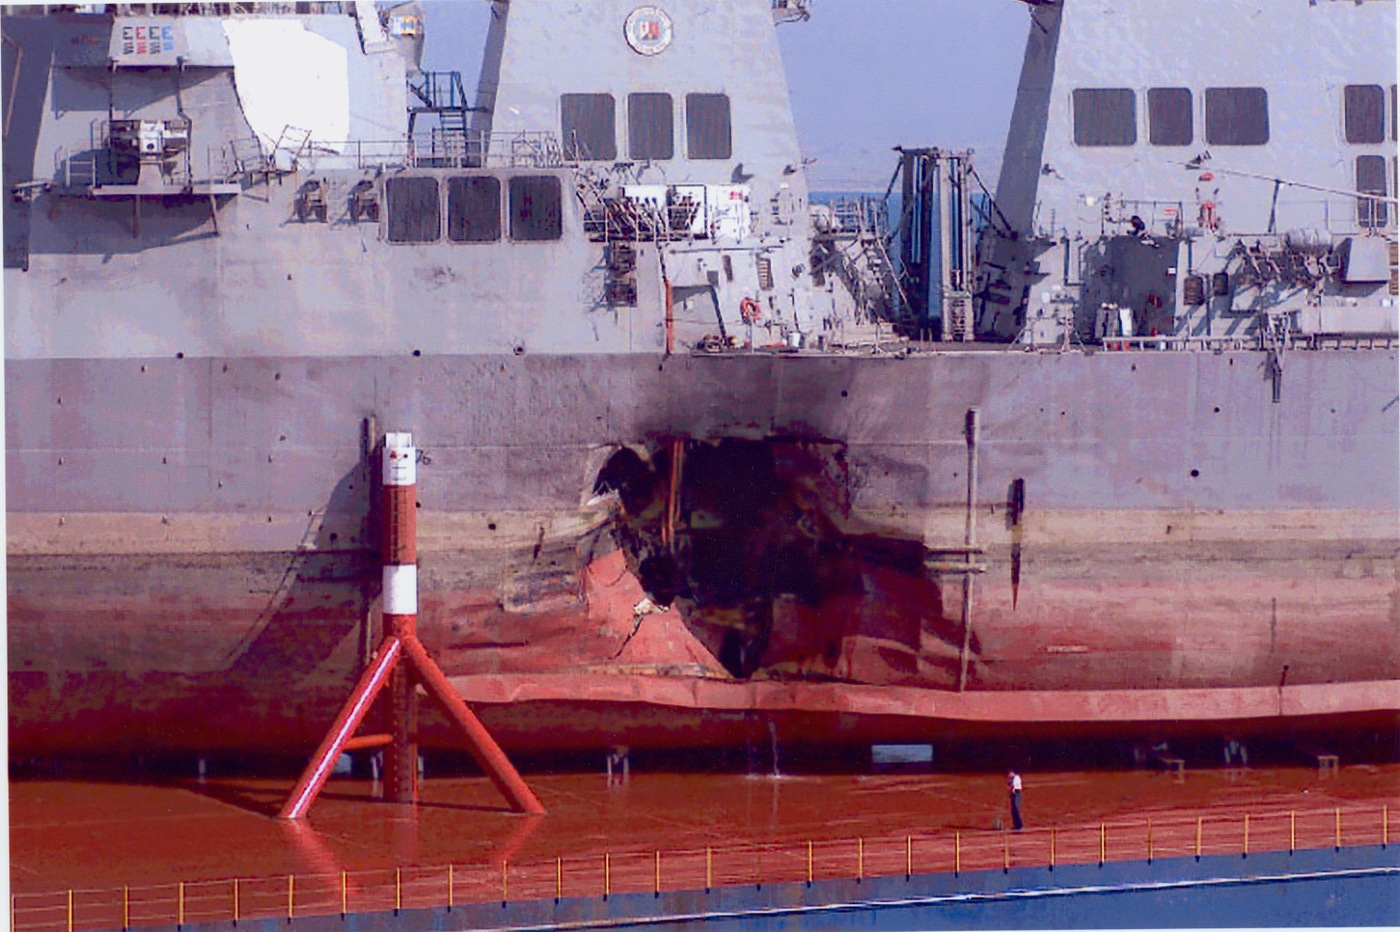 The USS Cole, a Navy guided missile destroyer, following the suicide attack in the port of Aden, Yemen on October 12, 2000.